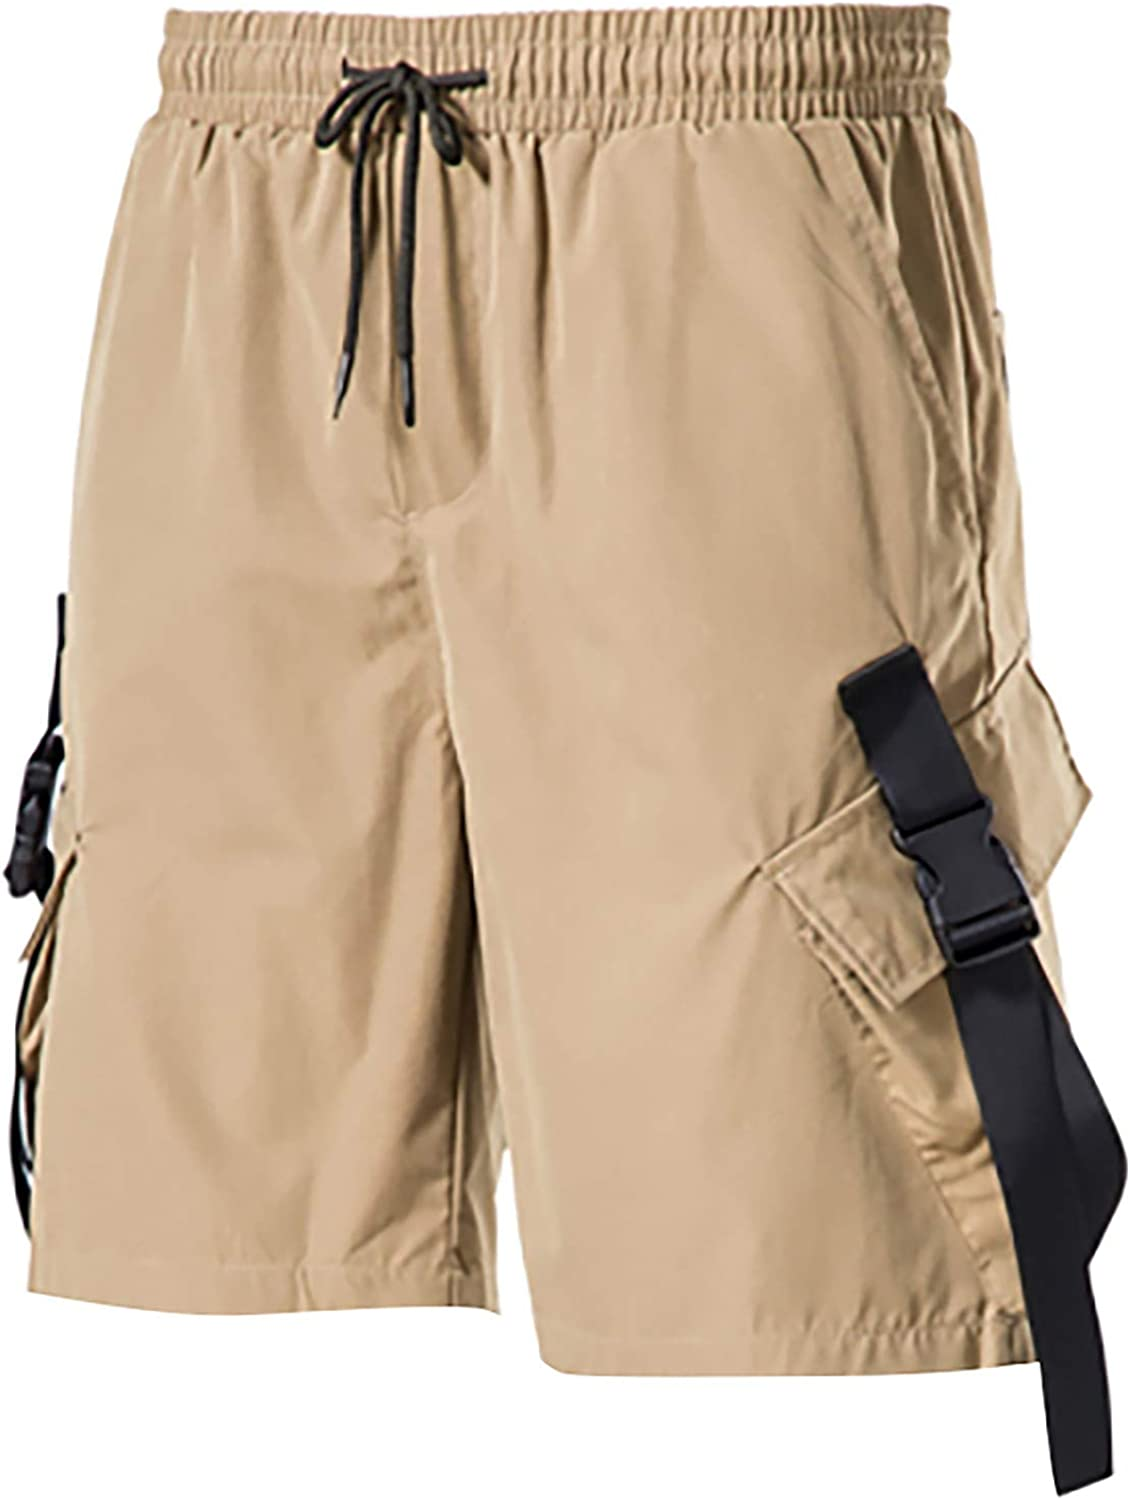 CLEEYYS Shorts for Men with Pockets Mens Cargo Shorts Elastic Waist with Drawstring Summer Loose Fit